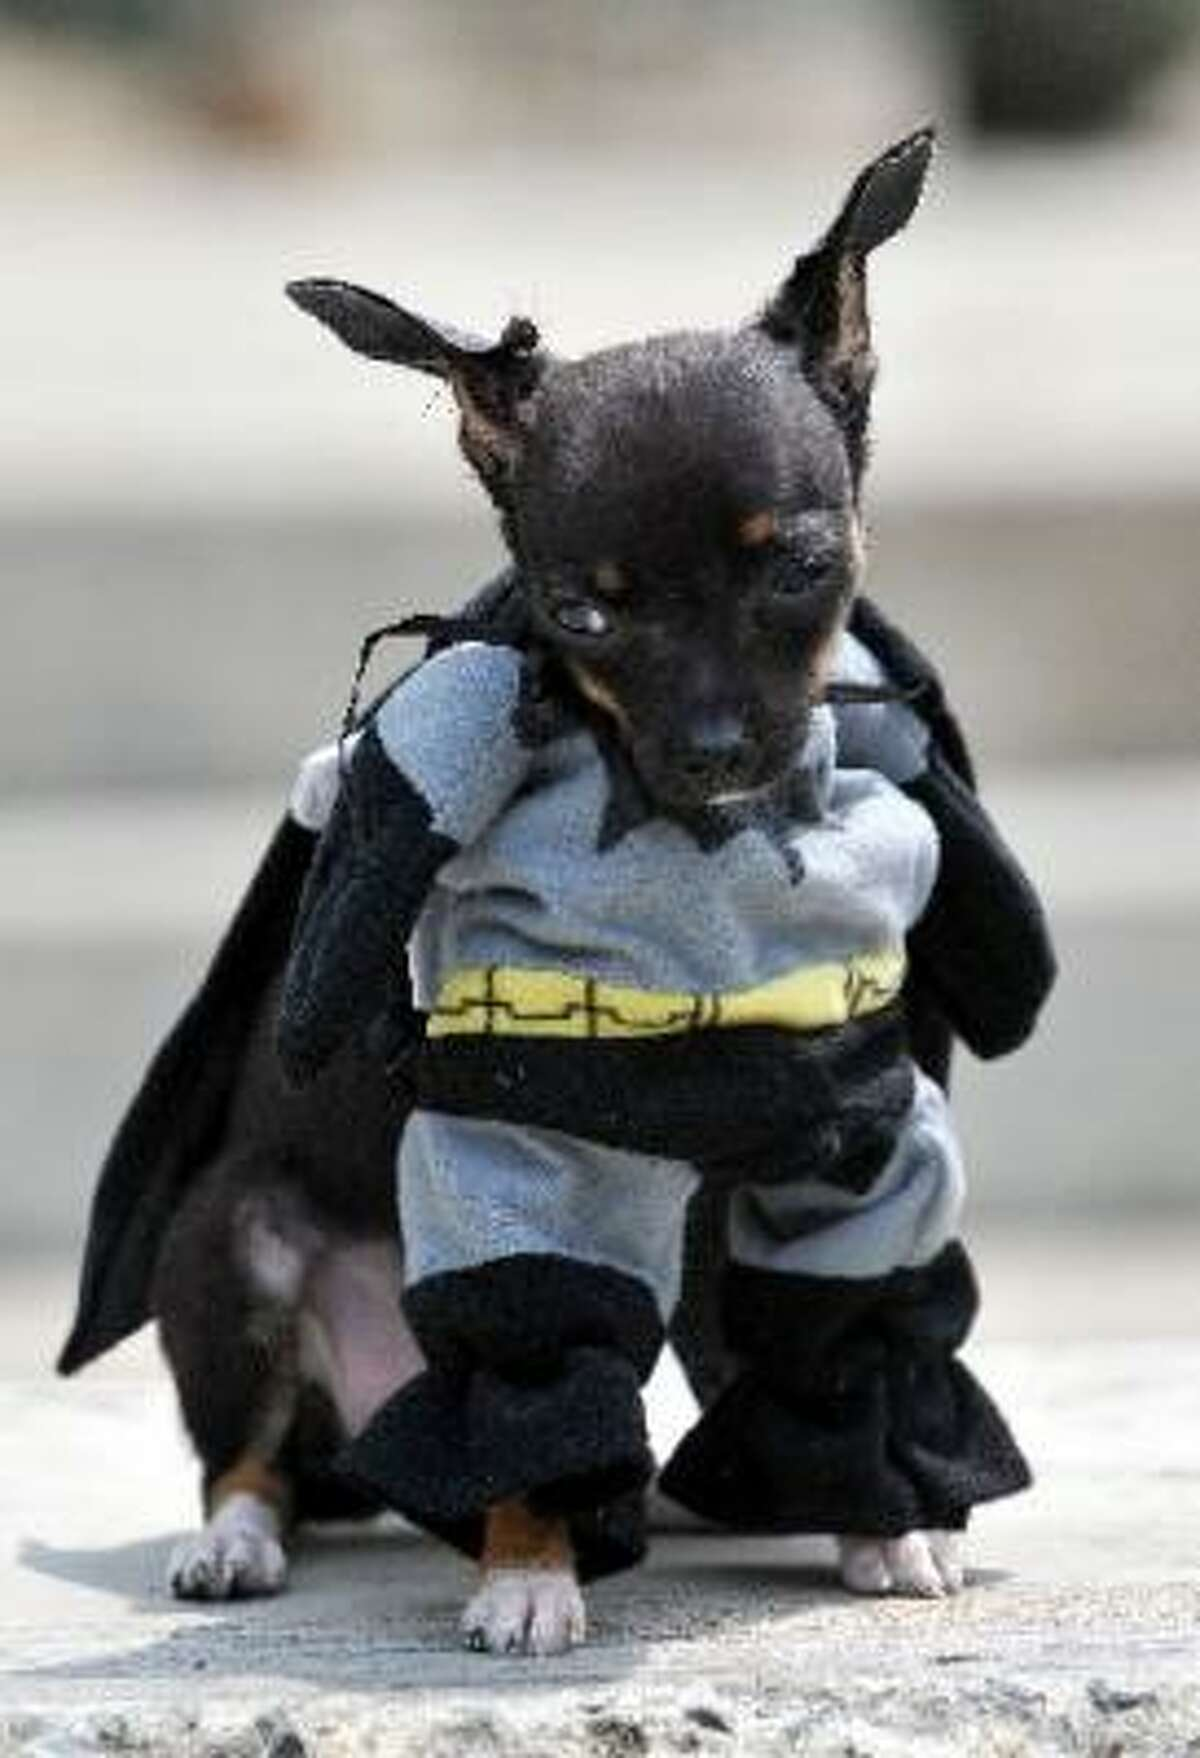 The shrinking Batman at a pet festival in Colombia.